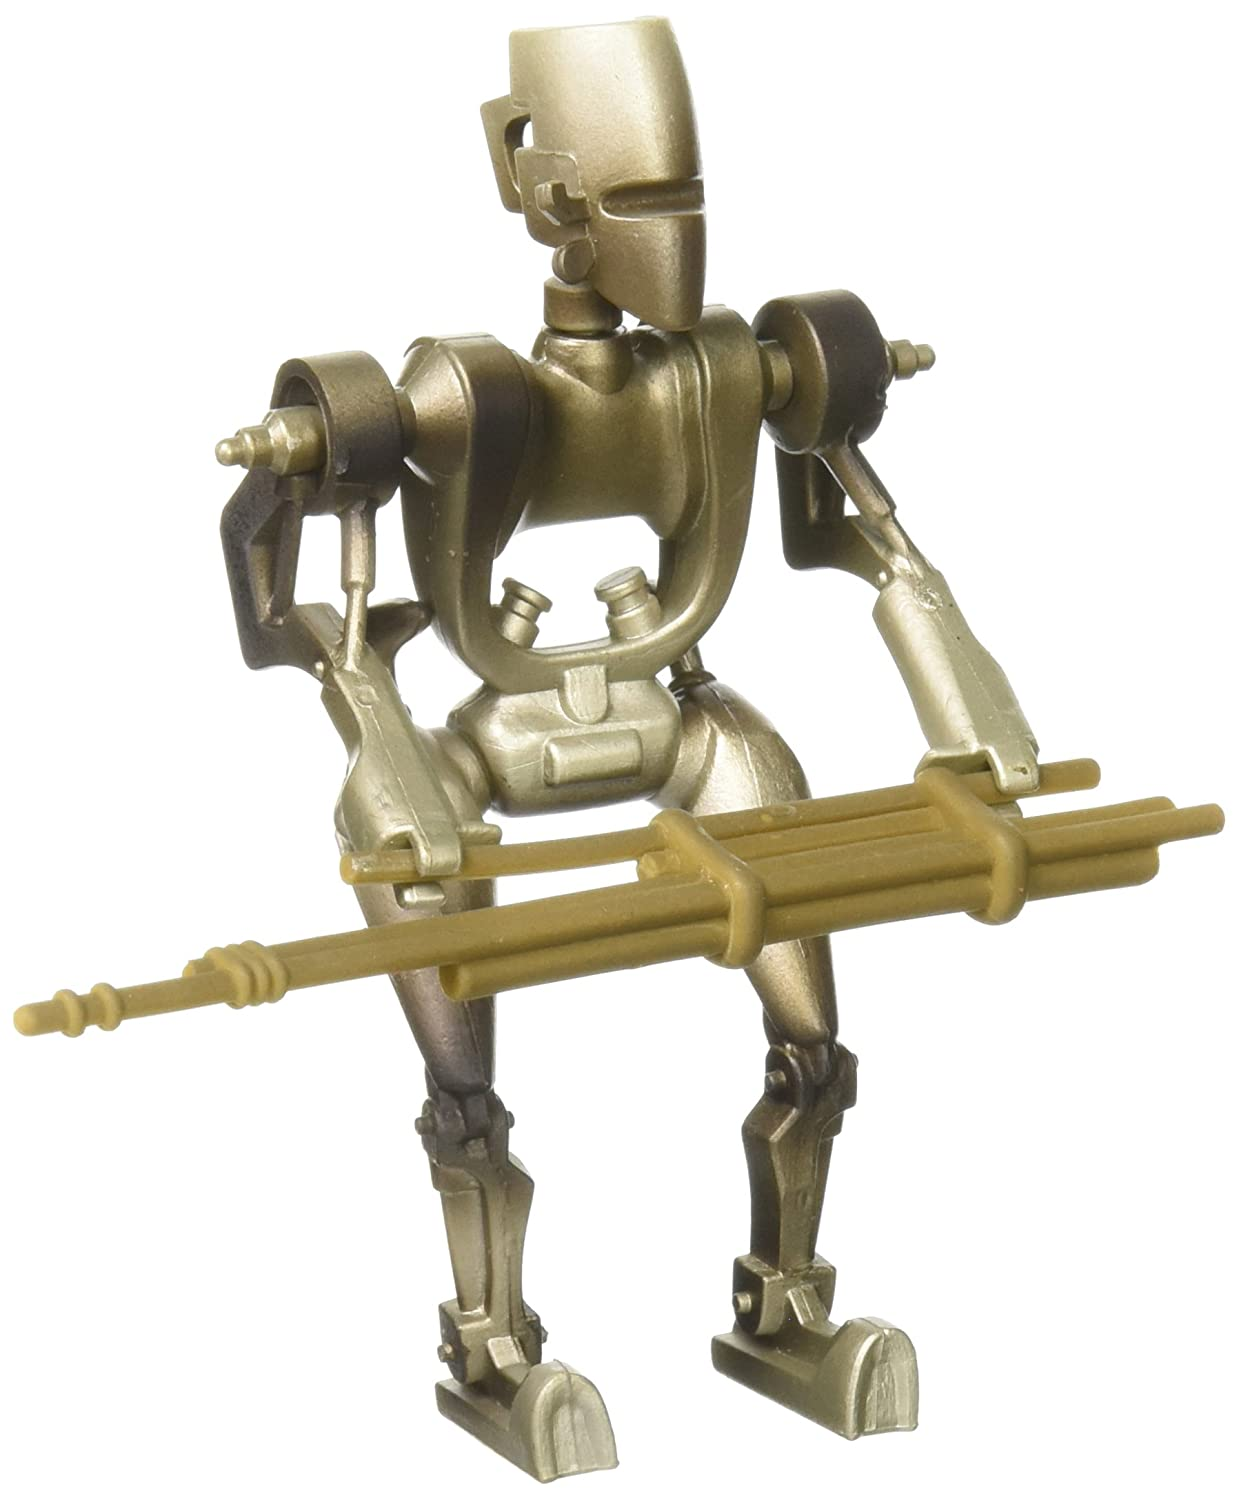 Star Wars The Power of the Force 4 Inch Action Figure ASP-7 Droid with Spaceport Supply Rods Kenner PF0902